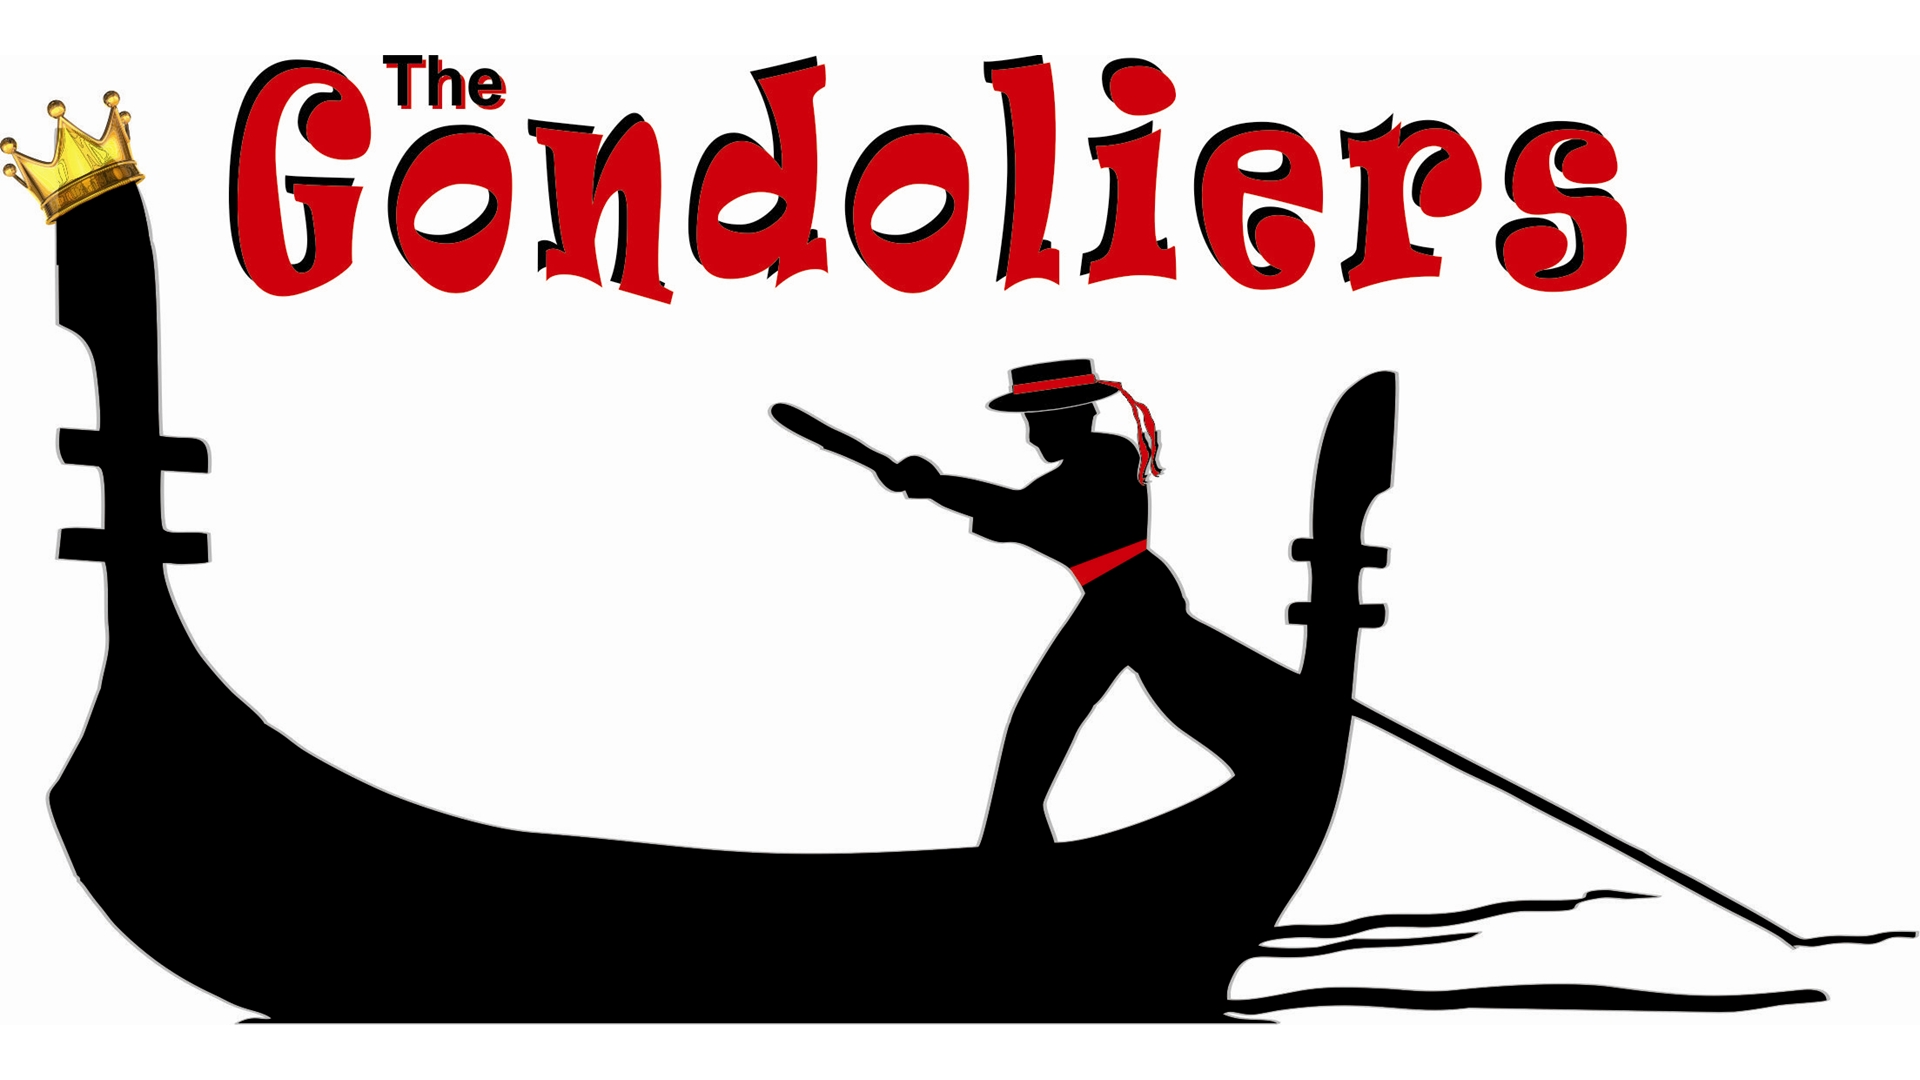 The Gondaliers